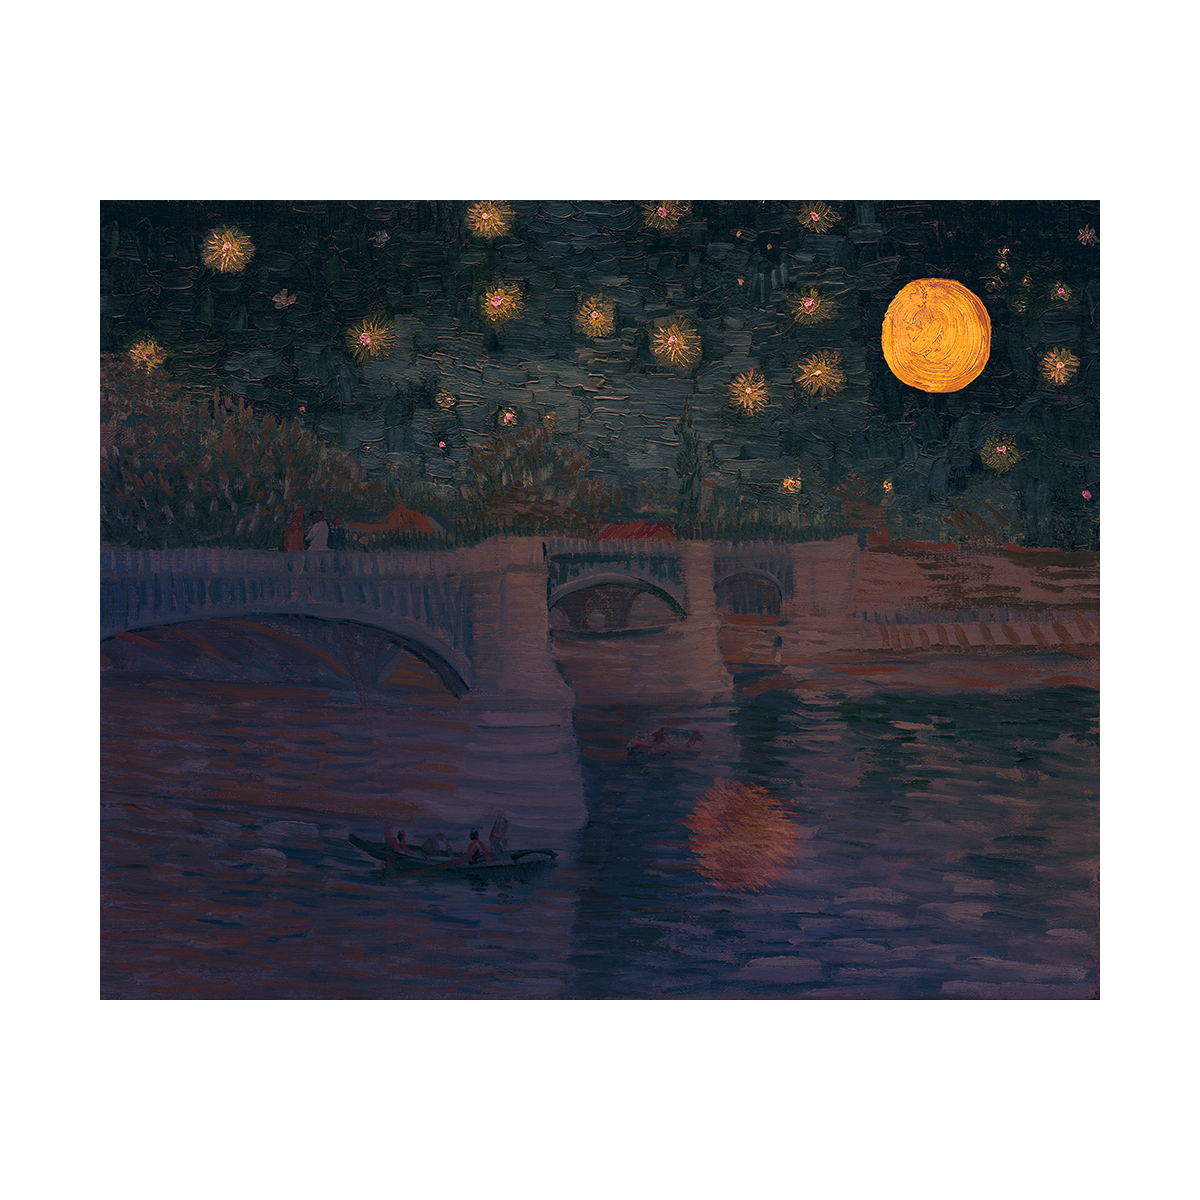 A painting of a bridge underneath a twinkling sky featuring an orange, full moon